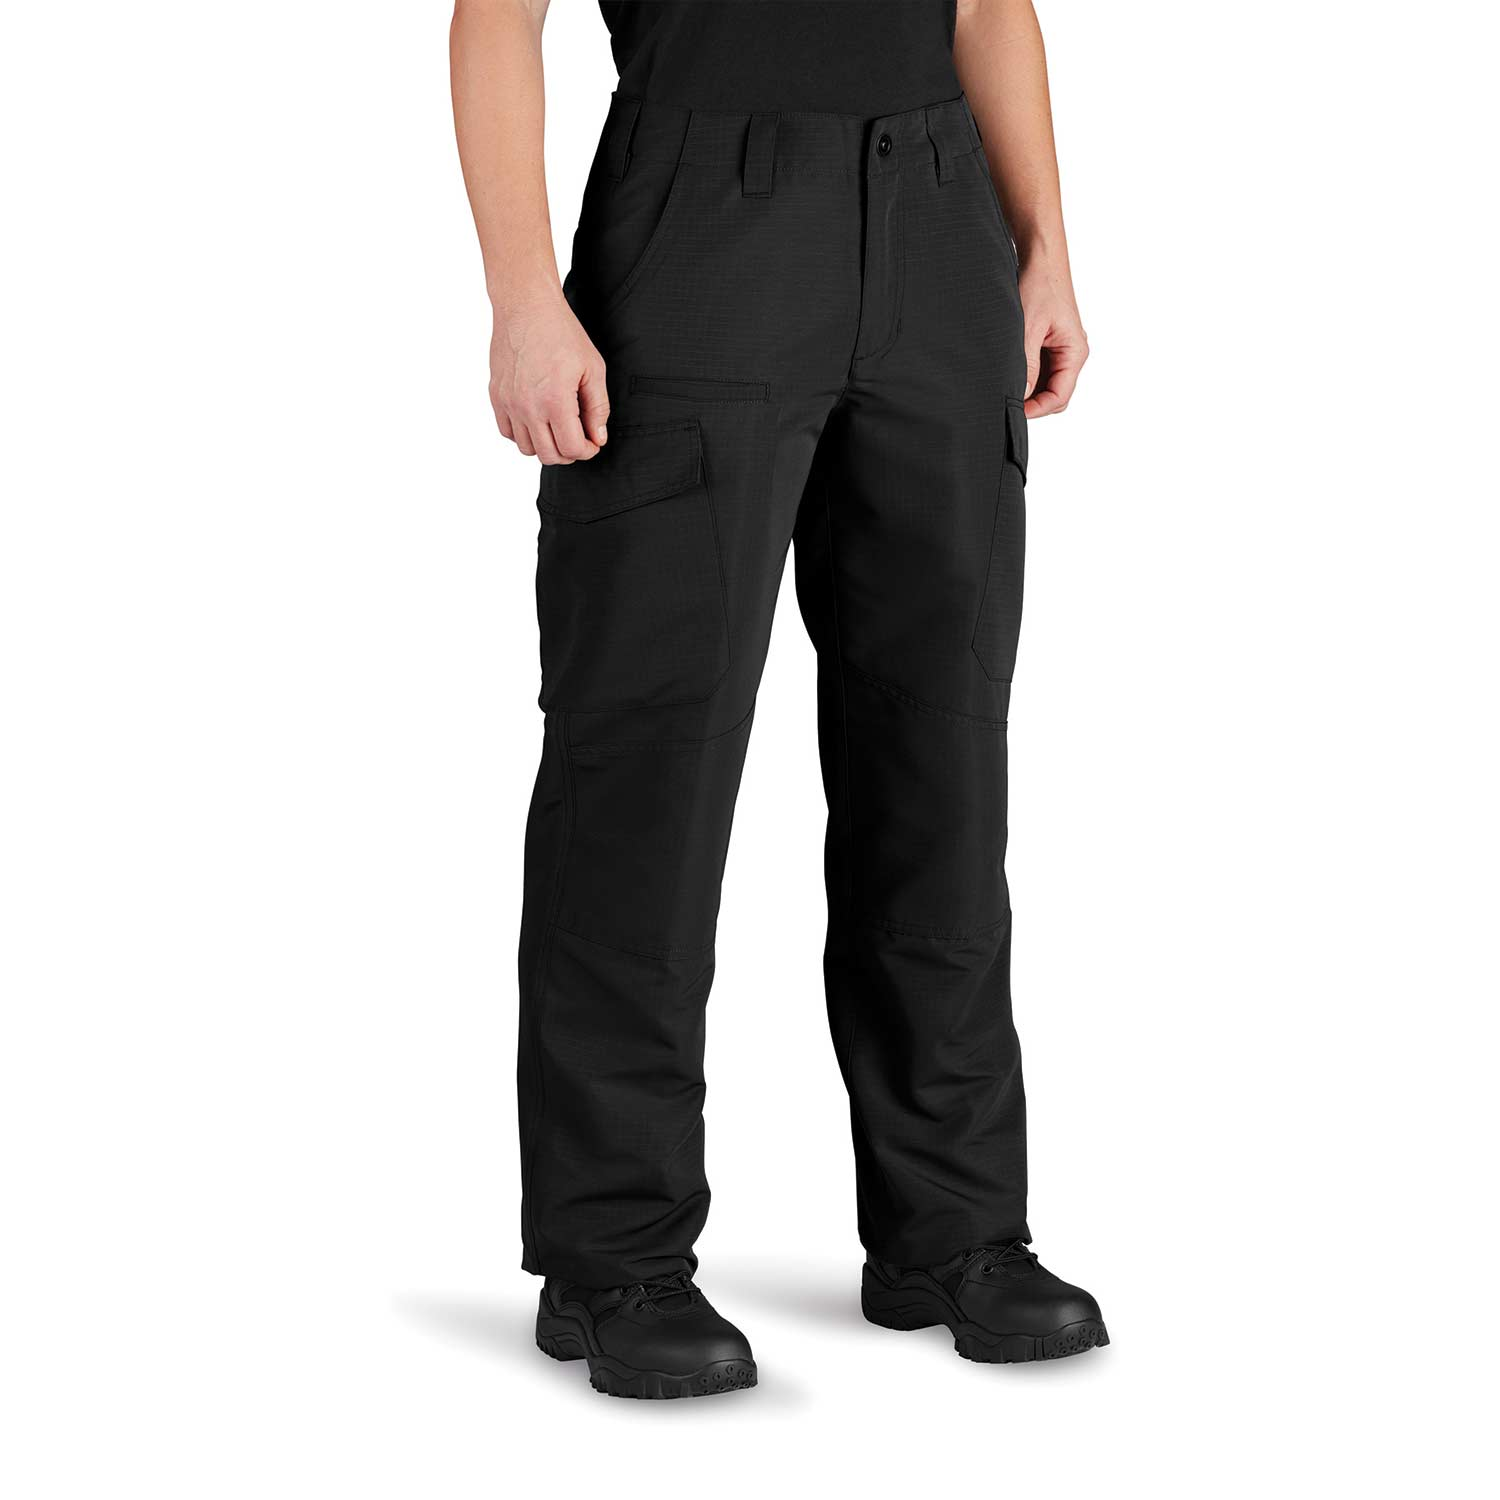 PROPPER Womens EdgeTec Tactical Pant